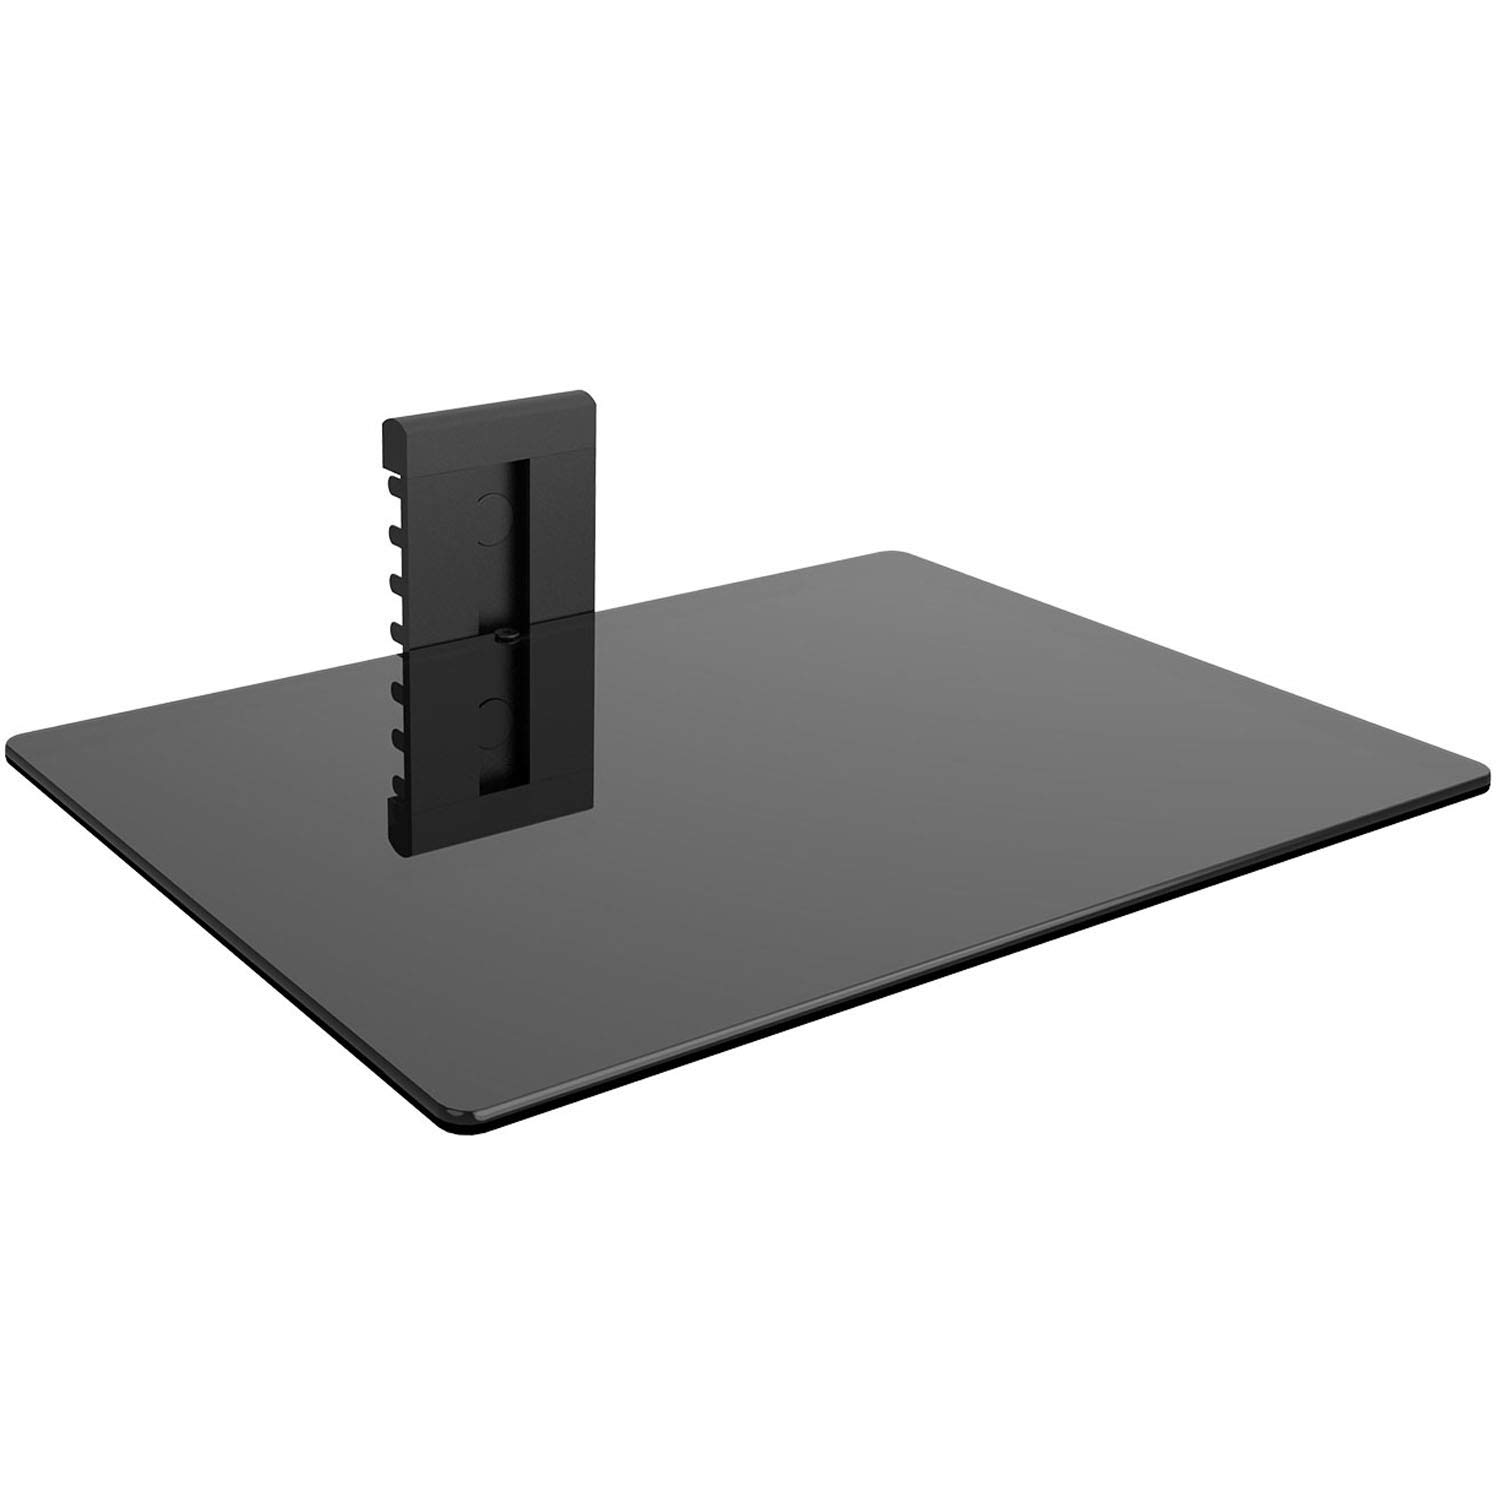 WALI CS201-1 Floating Wall Mounted Shelf with Strengthened Tempered Glasses for DVD Players,Cable Boxes, Games Consoles, TV Accessories, 1, Black by WALI